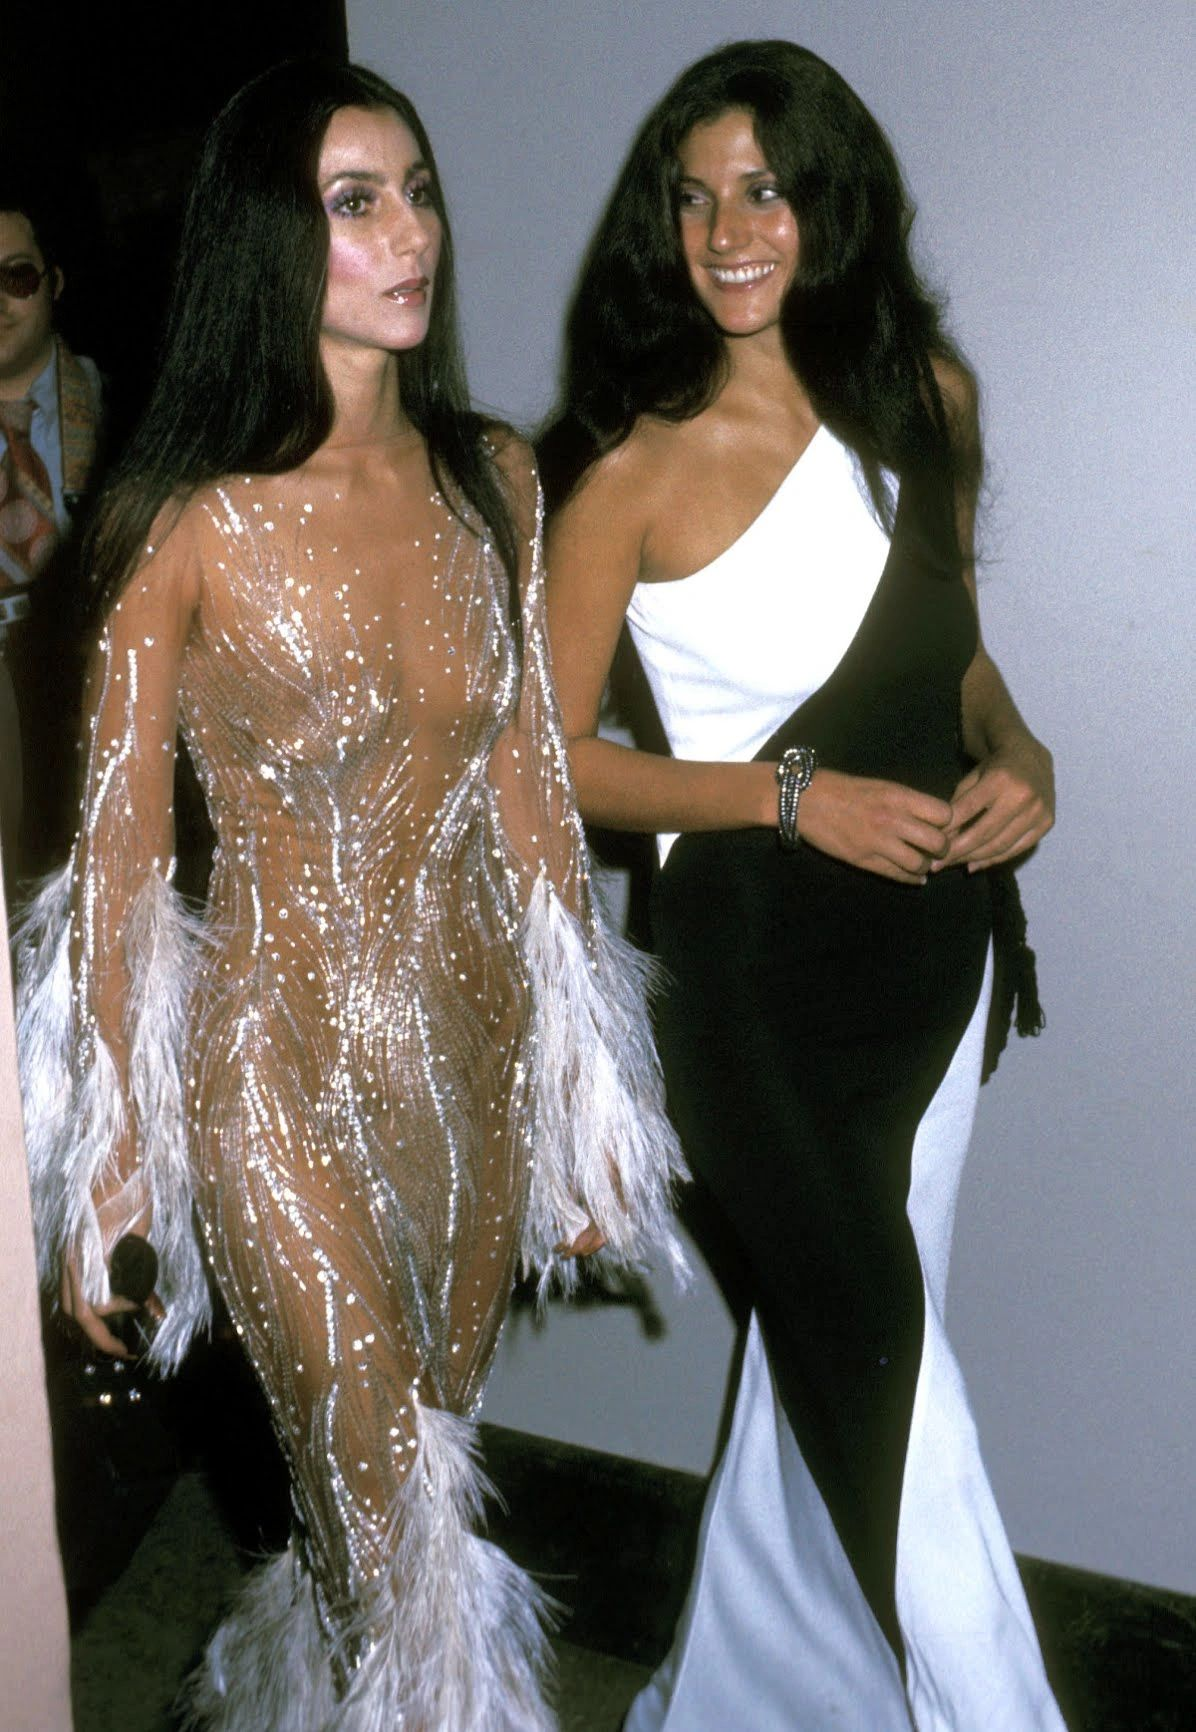 Cher and Paulette Betts, 1974. Theme: Romantic and Glamorous Hollywood Design. (Credit: Ron Galella/WireImage)